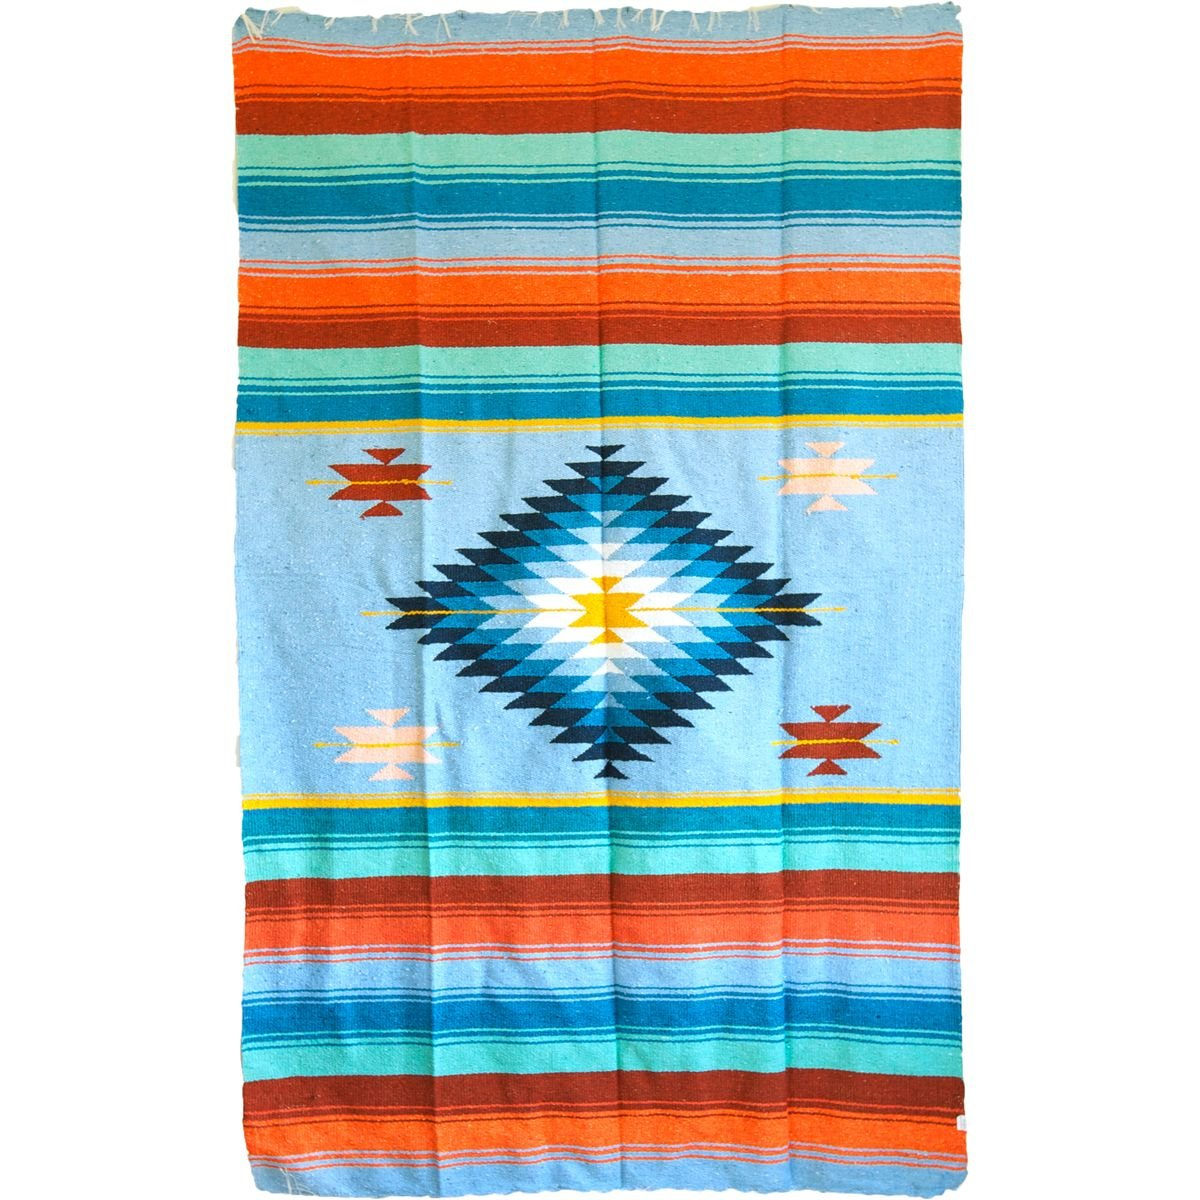 (One Size, Yellow Blue) - Nipomo Tierra Blanket Yellow Blue, One Size B079T5KPGC  イエローブルー One Size